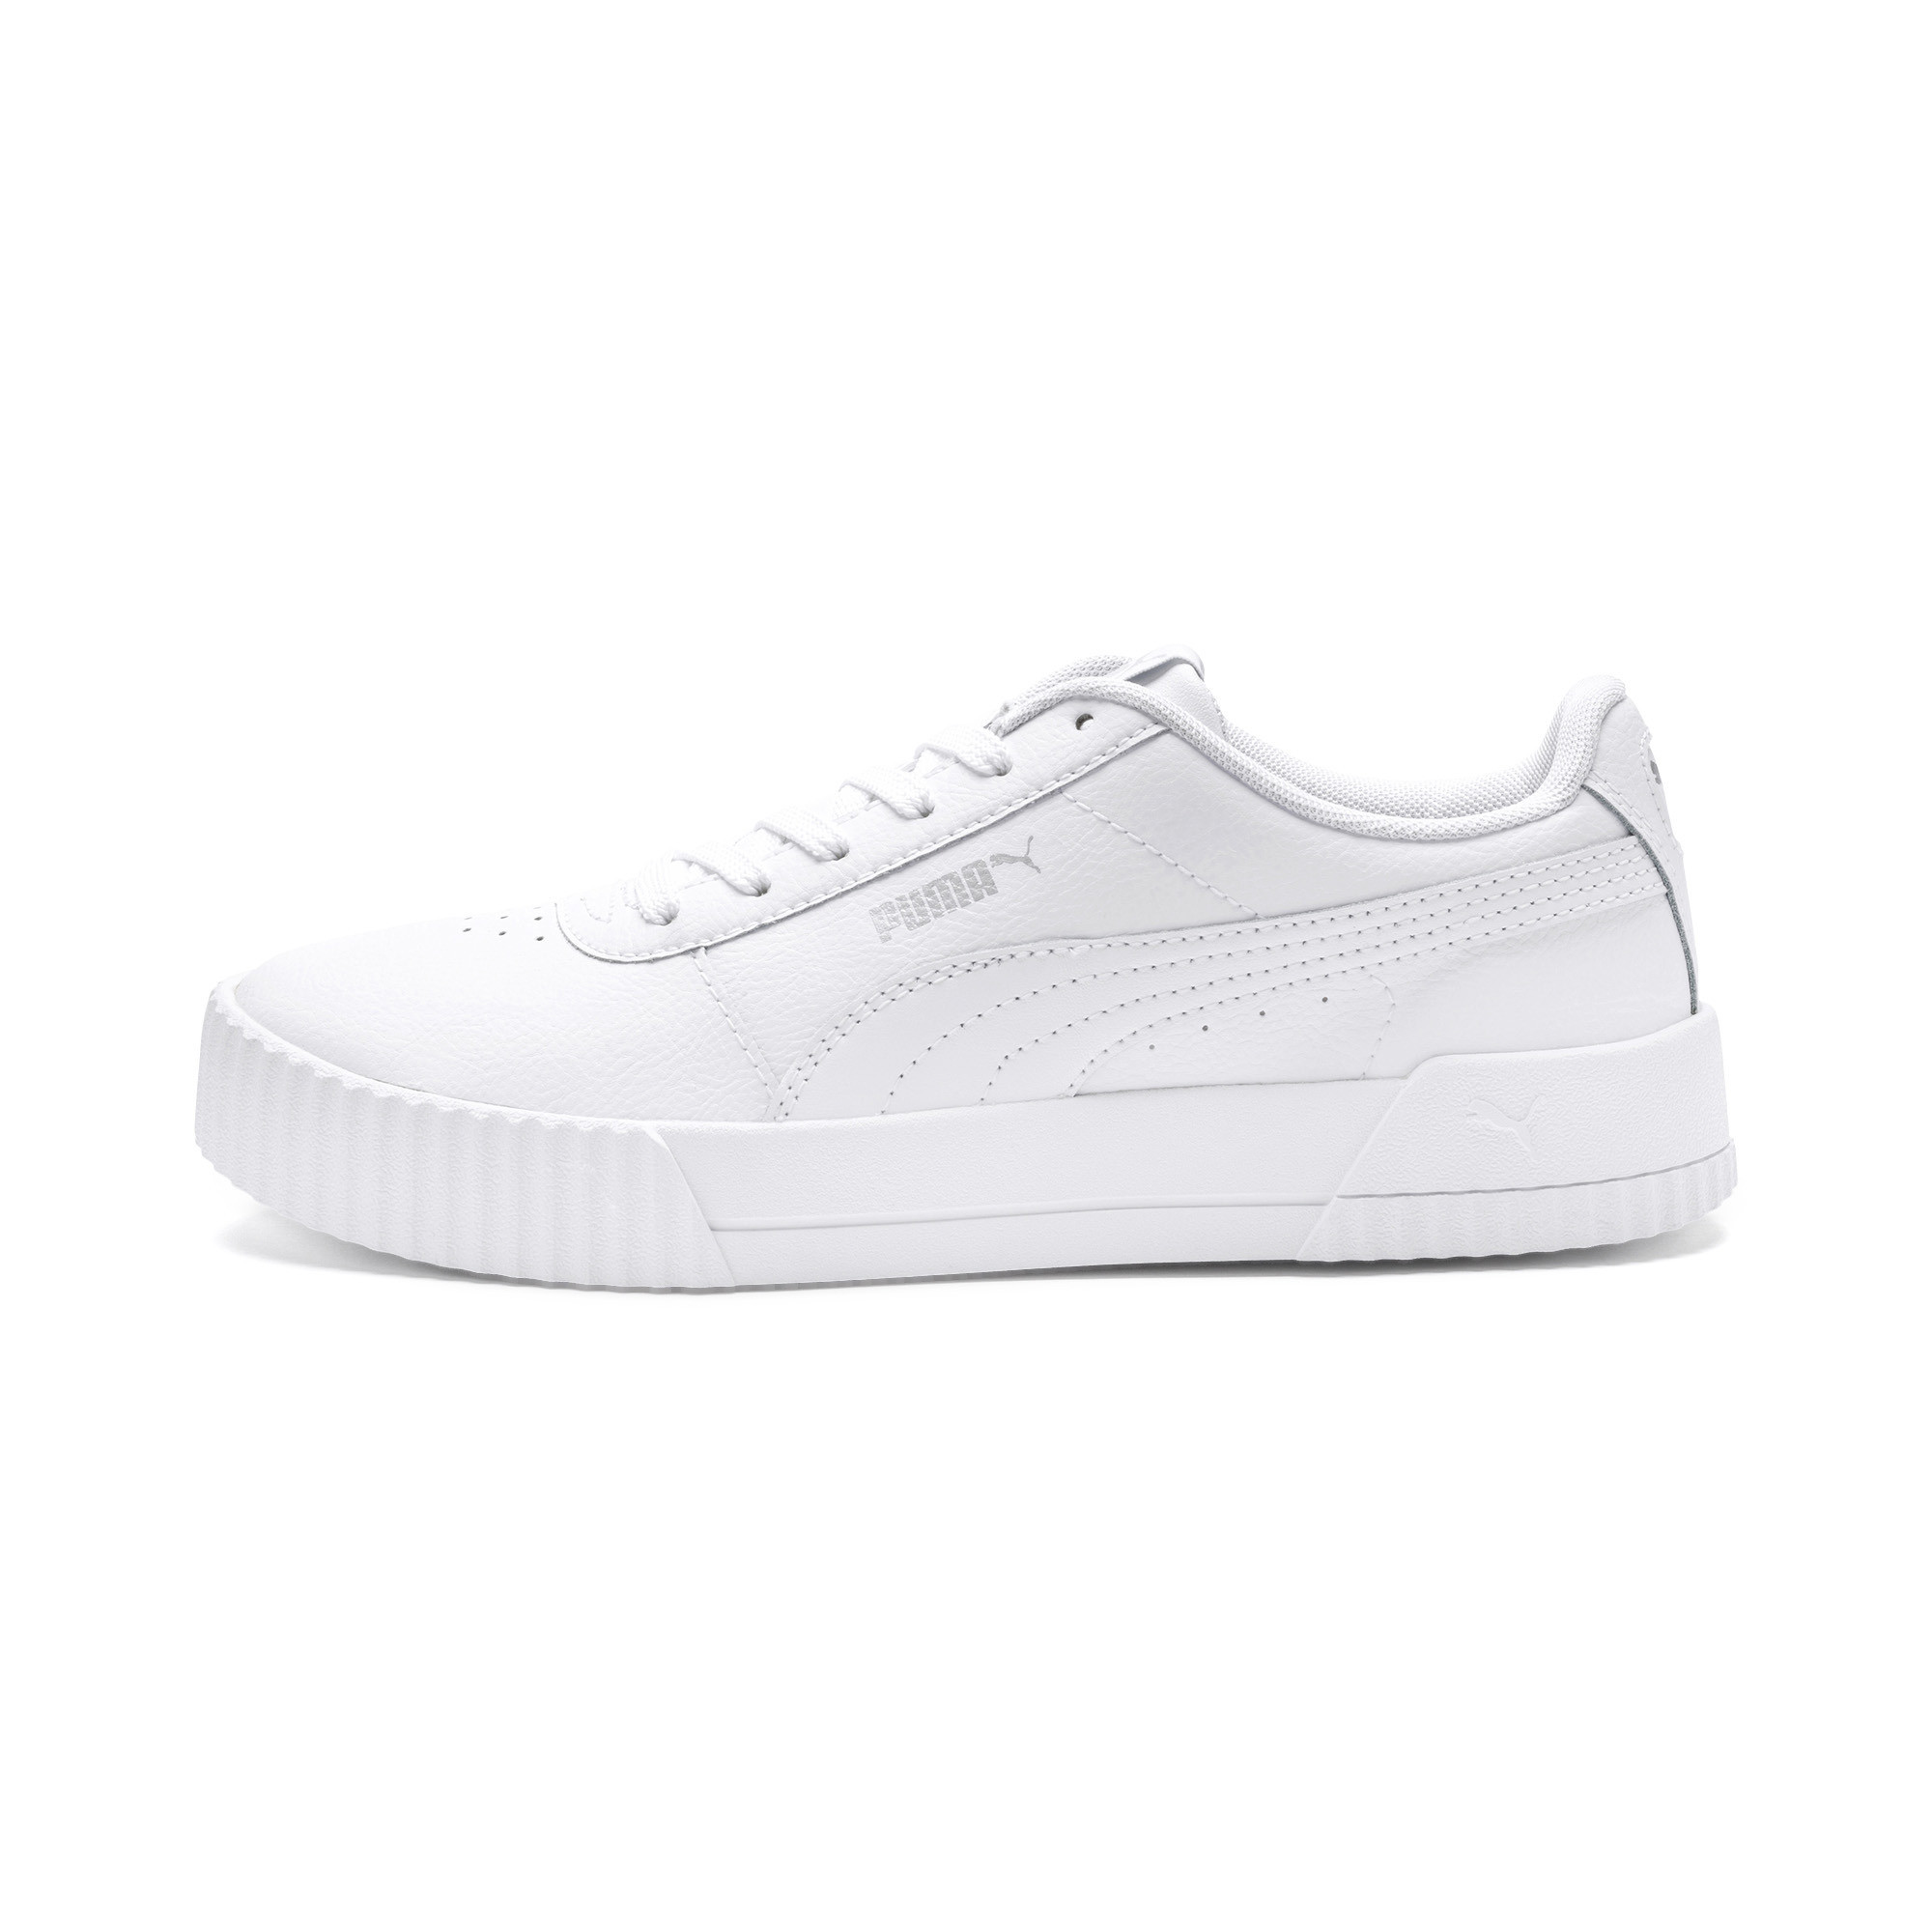 PUMA-Carina-Leather-Women-s-Sneakers-Women-Shoe-Basics thumbnail 4